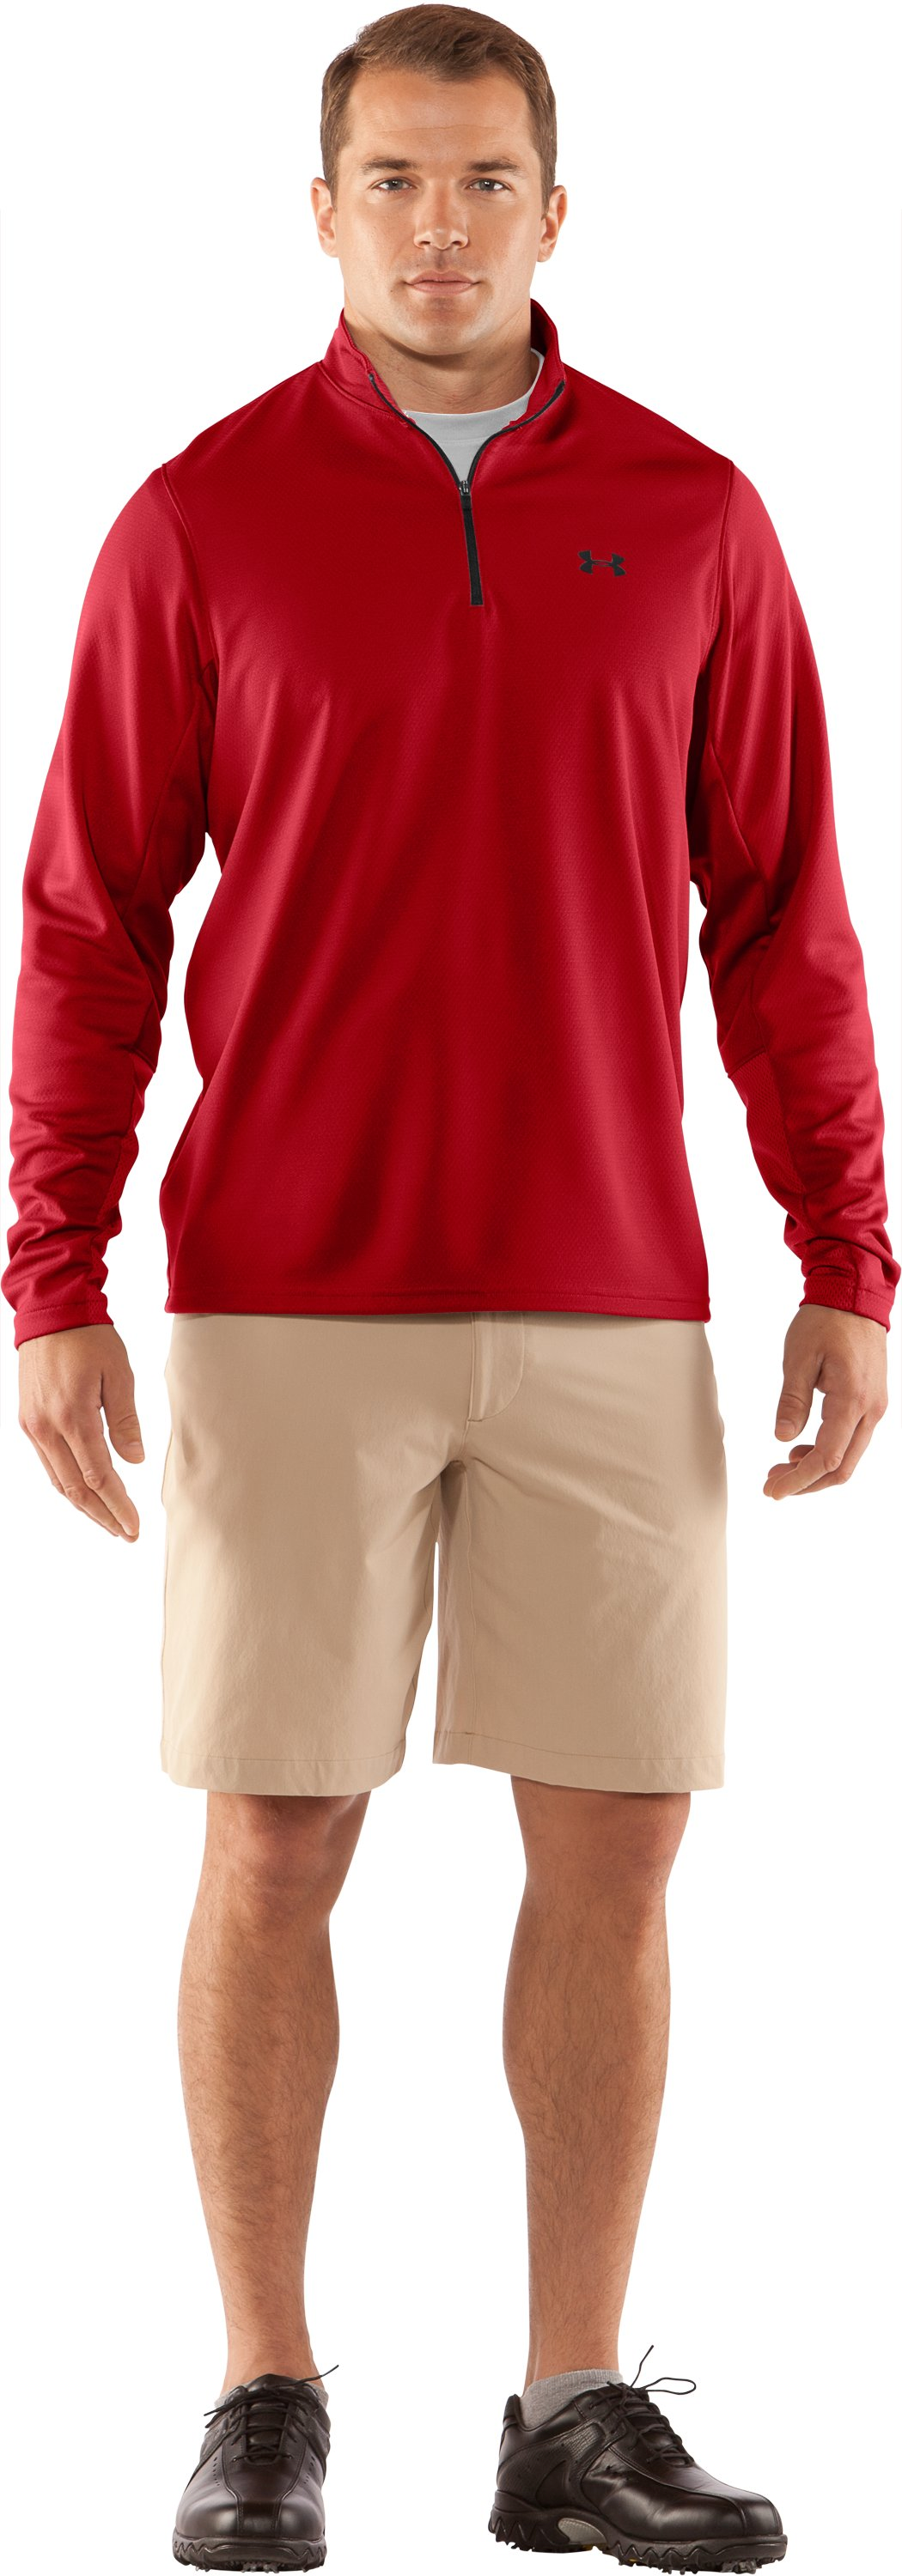 Men's AllSeasonGear® ¼ Zip Golf Jacket, Red, zoomed image